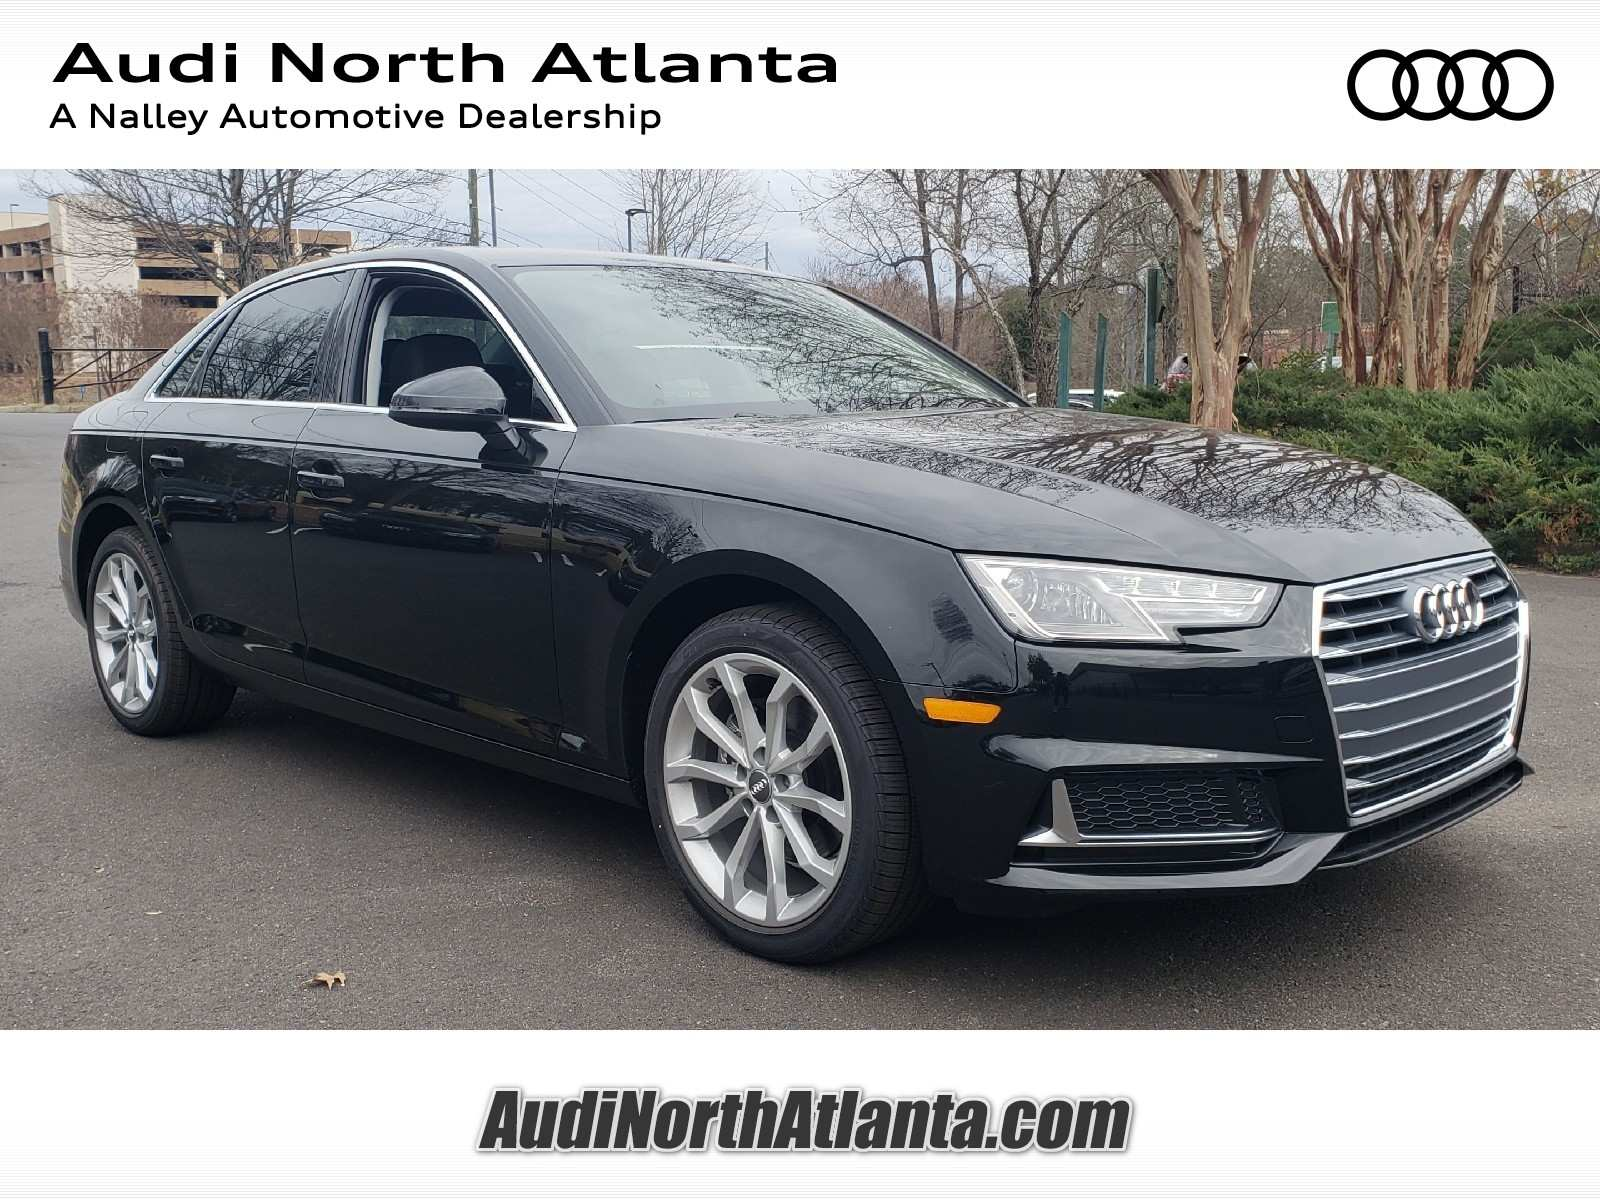 55 Great 2019 Audi A4 For Sale Exterior with 2019 Audi A4 For Sale